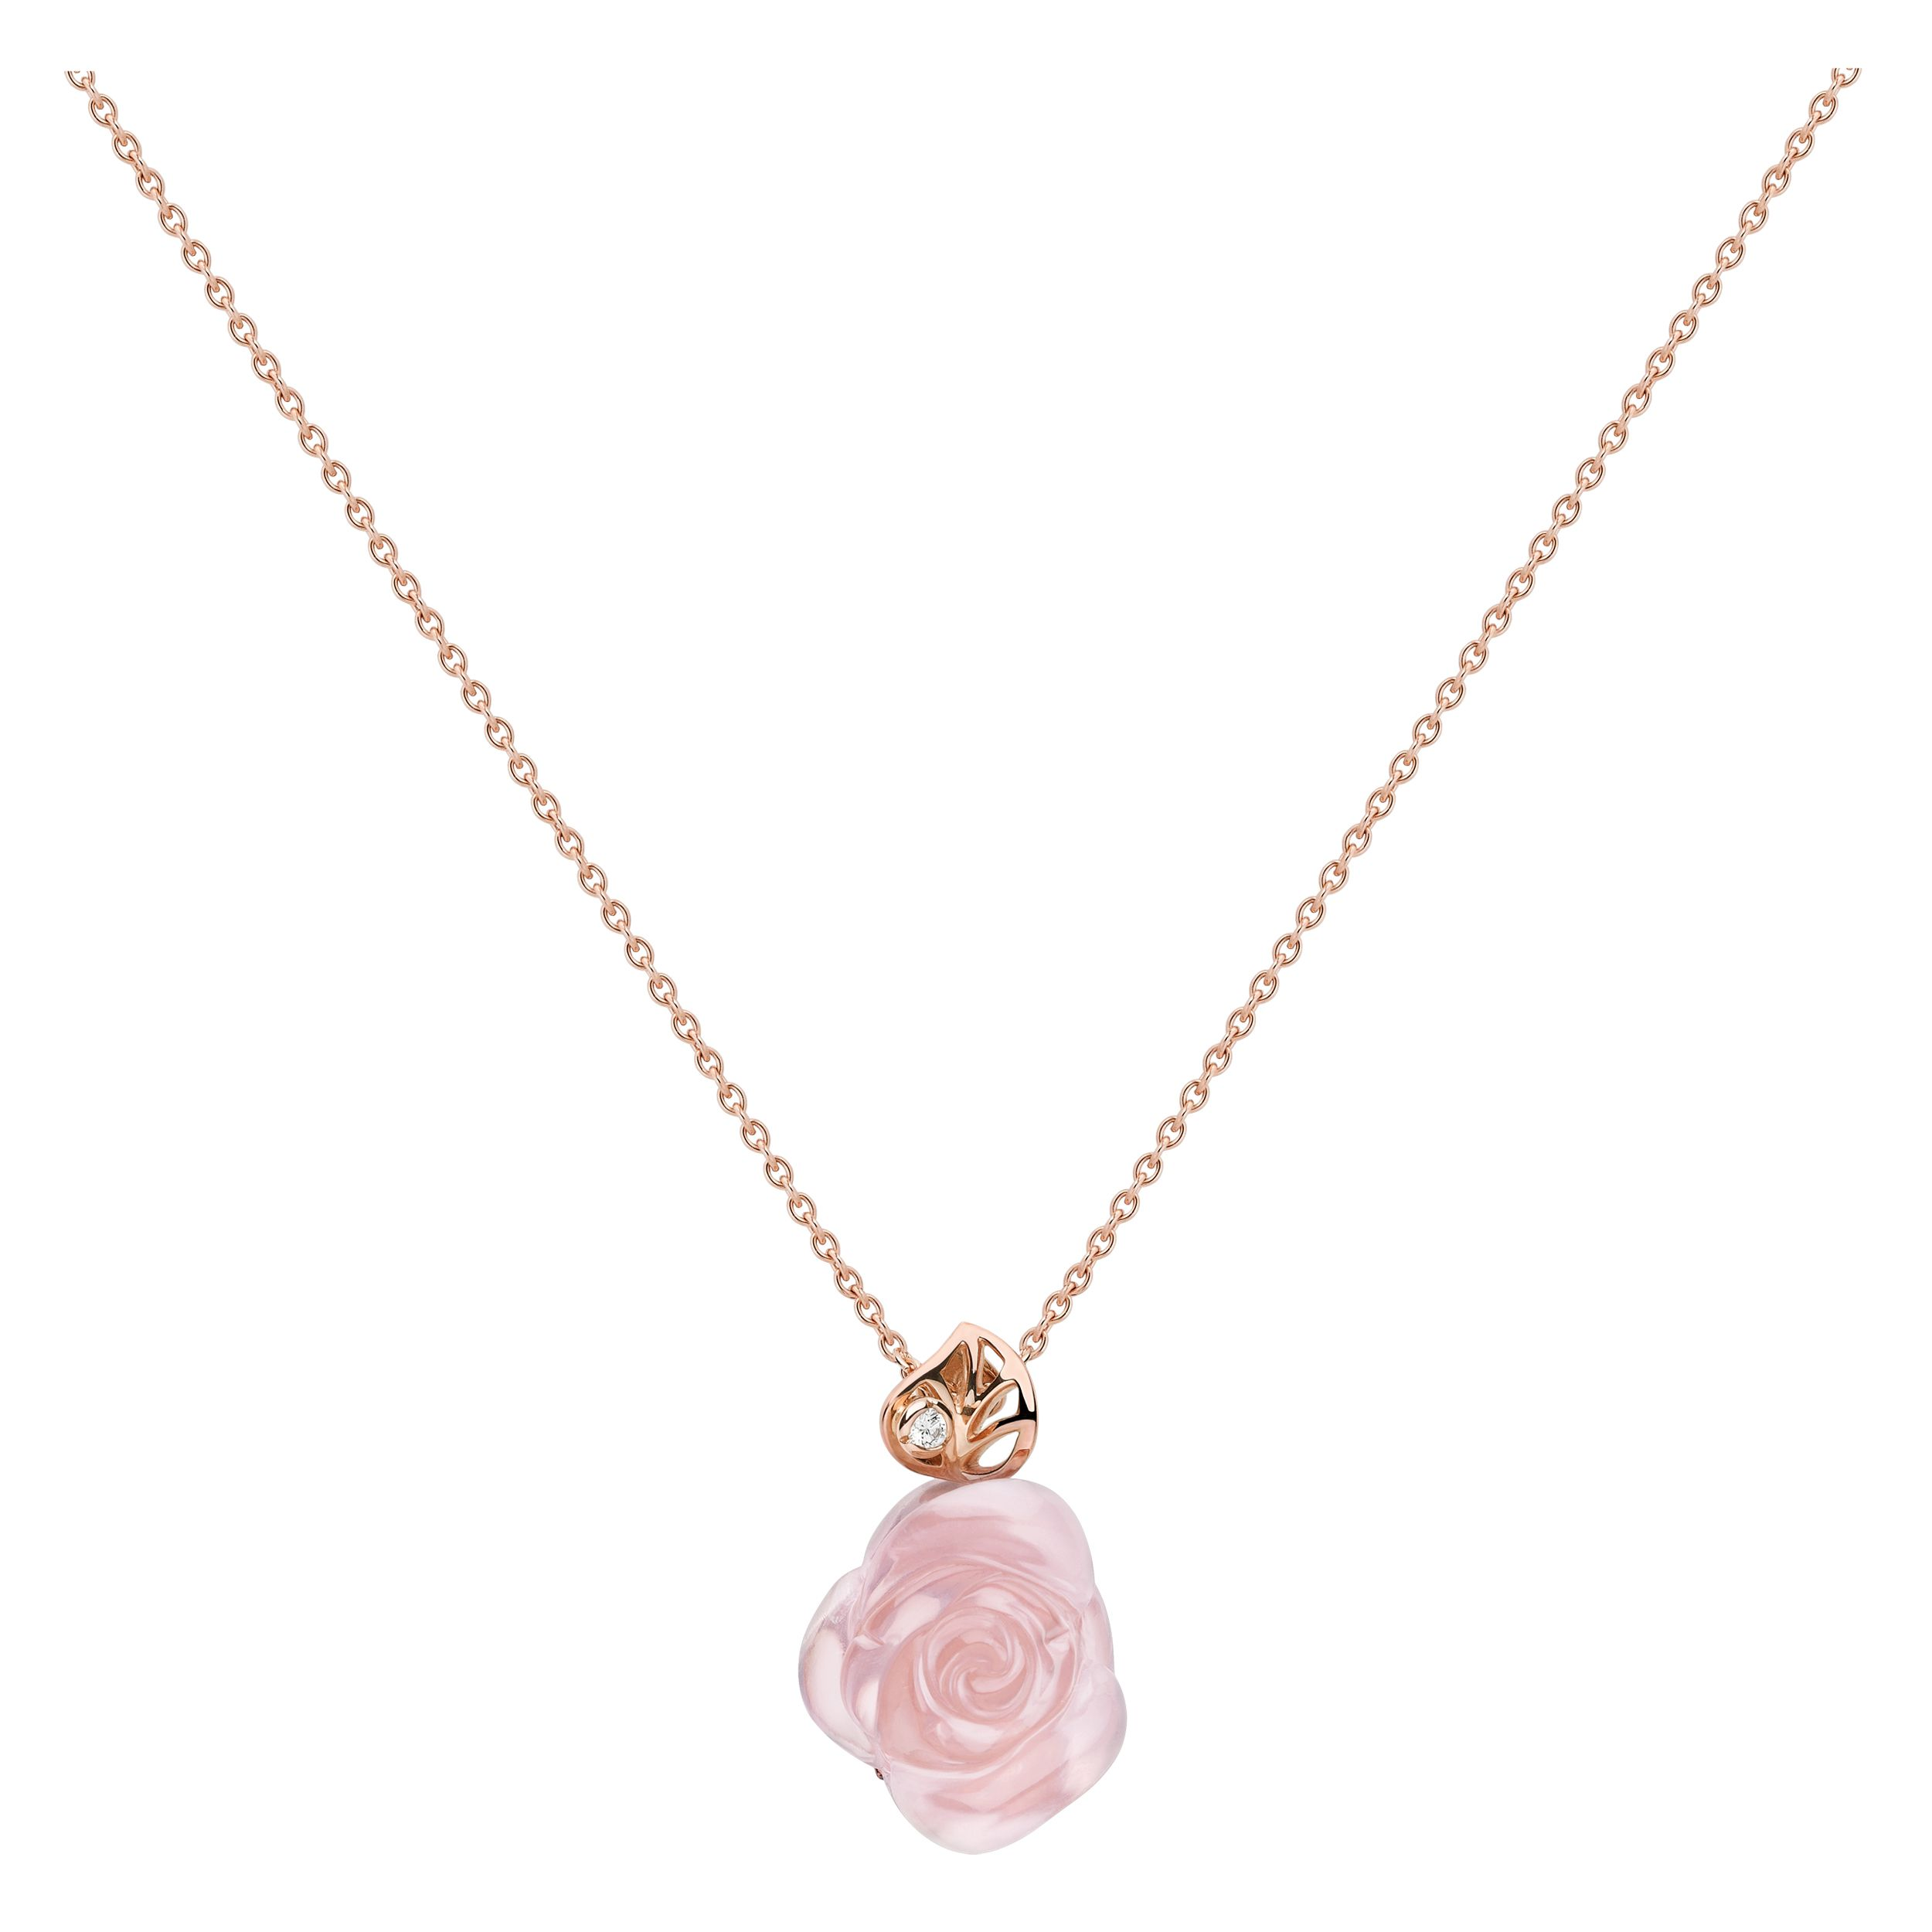 dbe686d7cf ROSE DIOR PRE CATELAN - Necklace in 750/1000 pink gold, diamond and ...